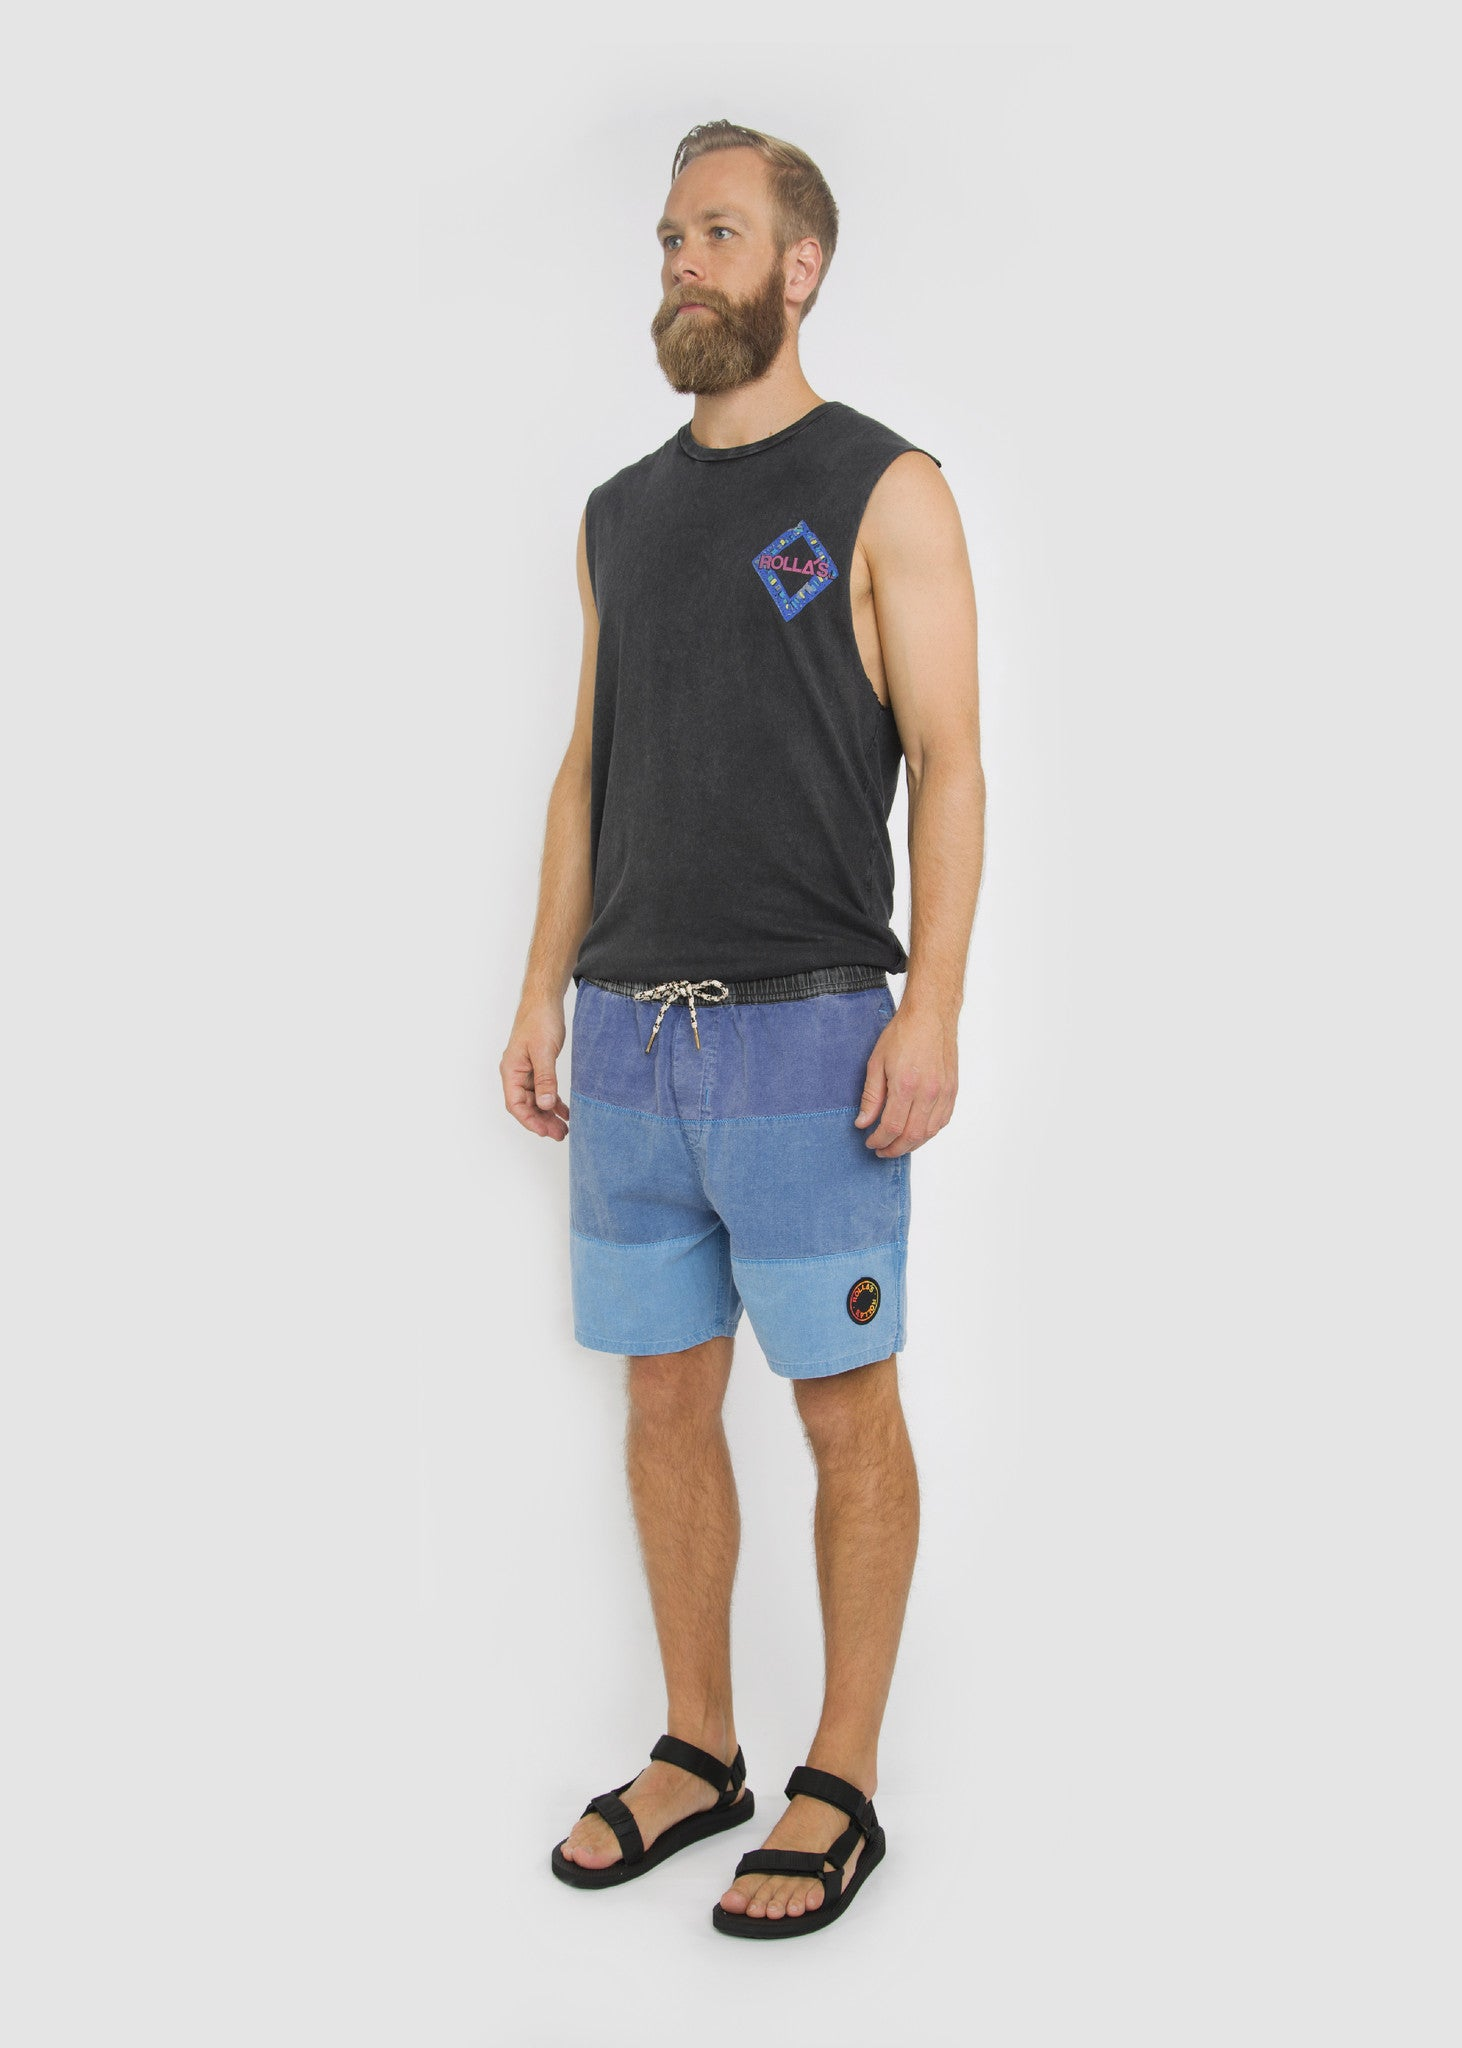 Sunset Shorts Blue Gradient